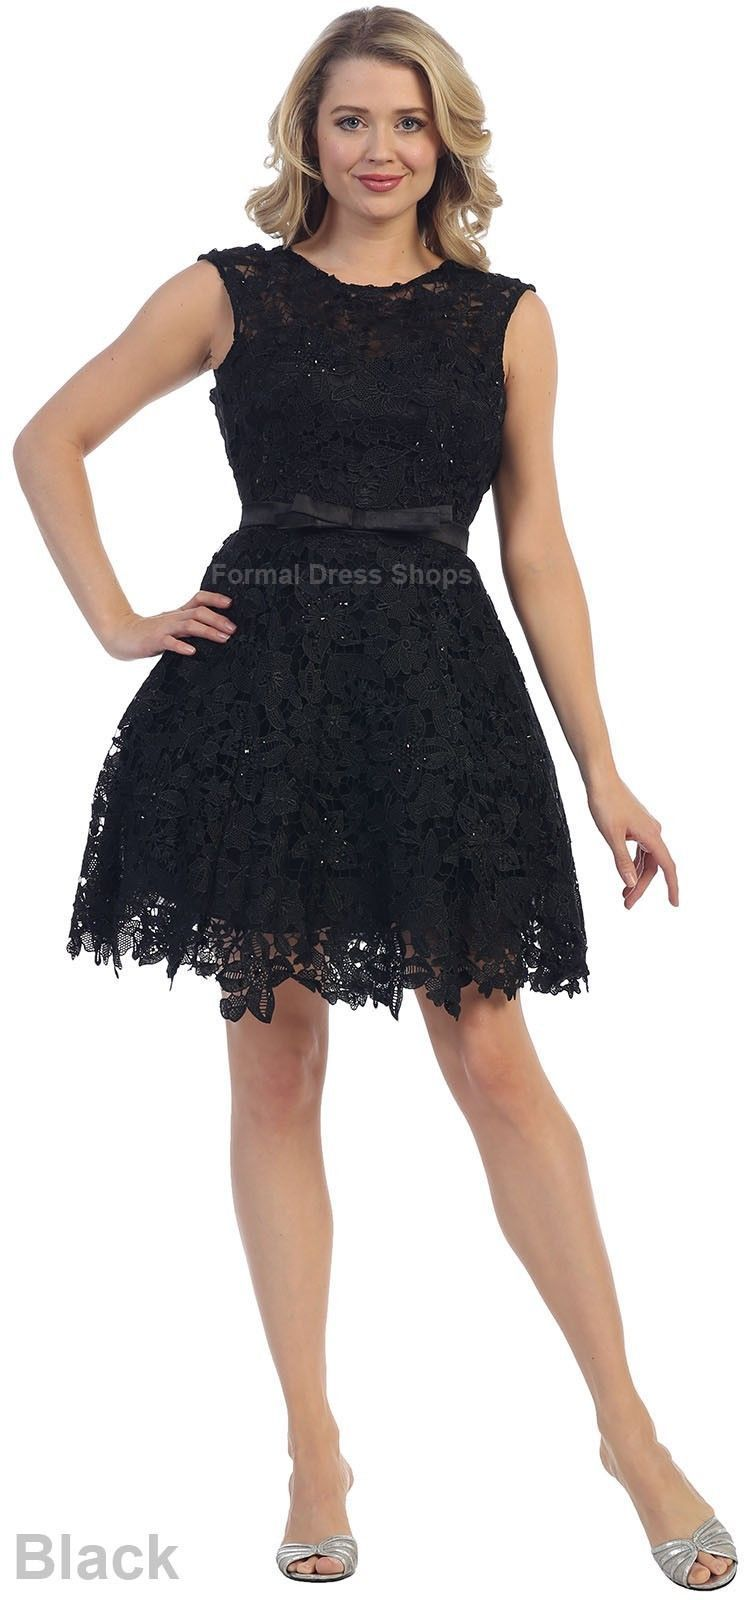 Awesome amazing short cap sleeve cute prom cocktail lace demure